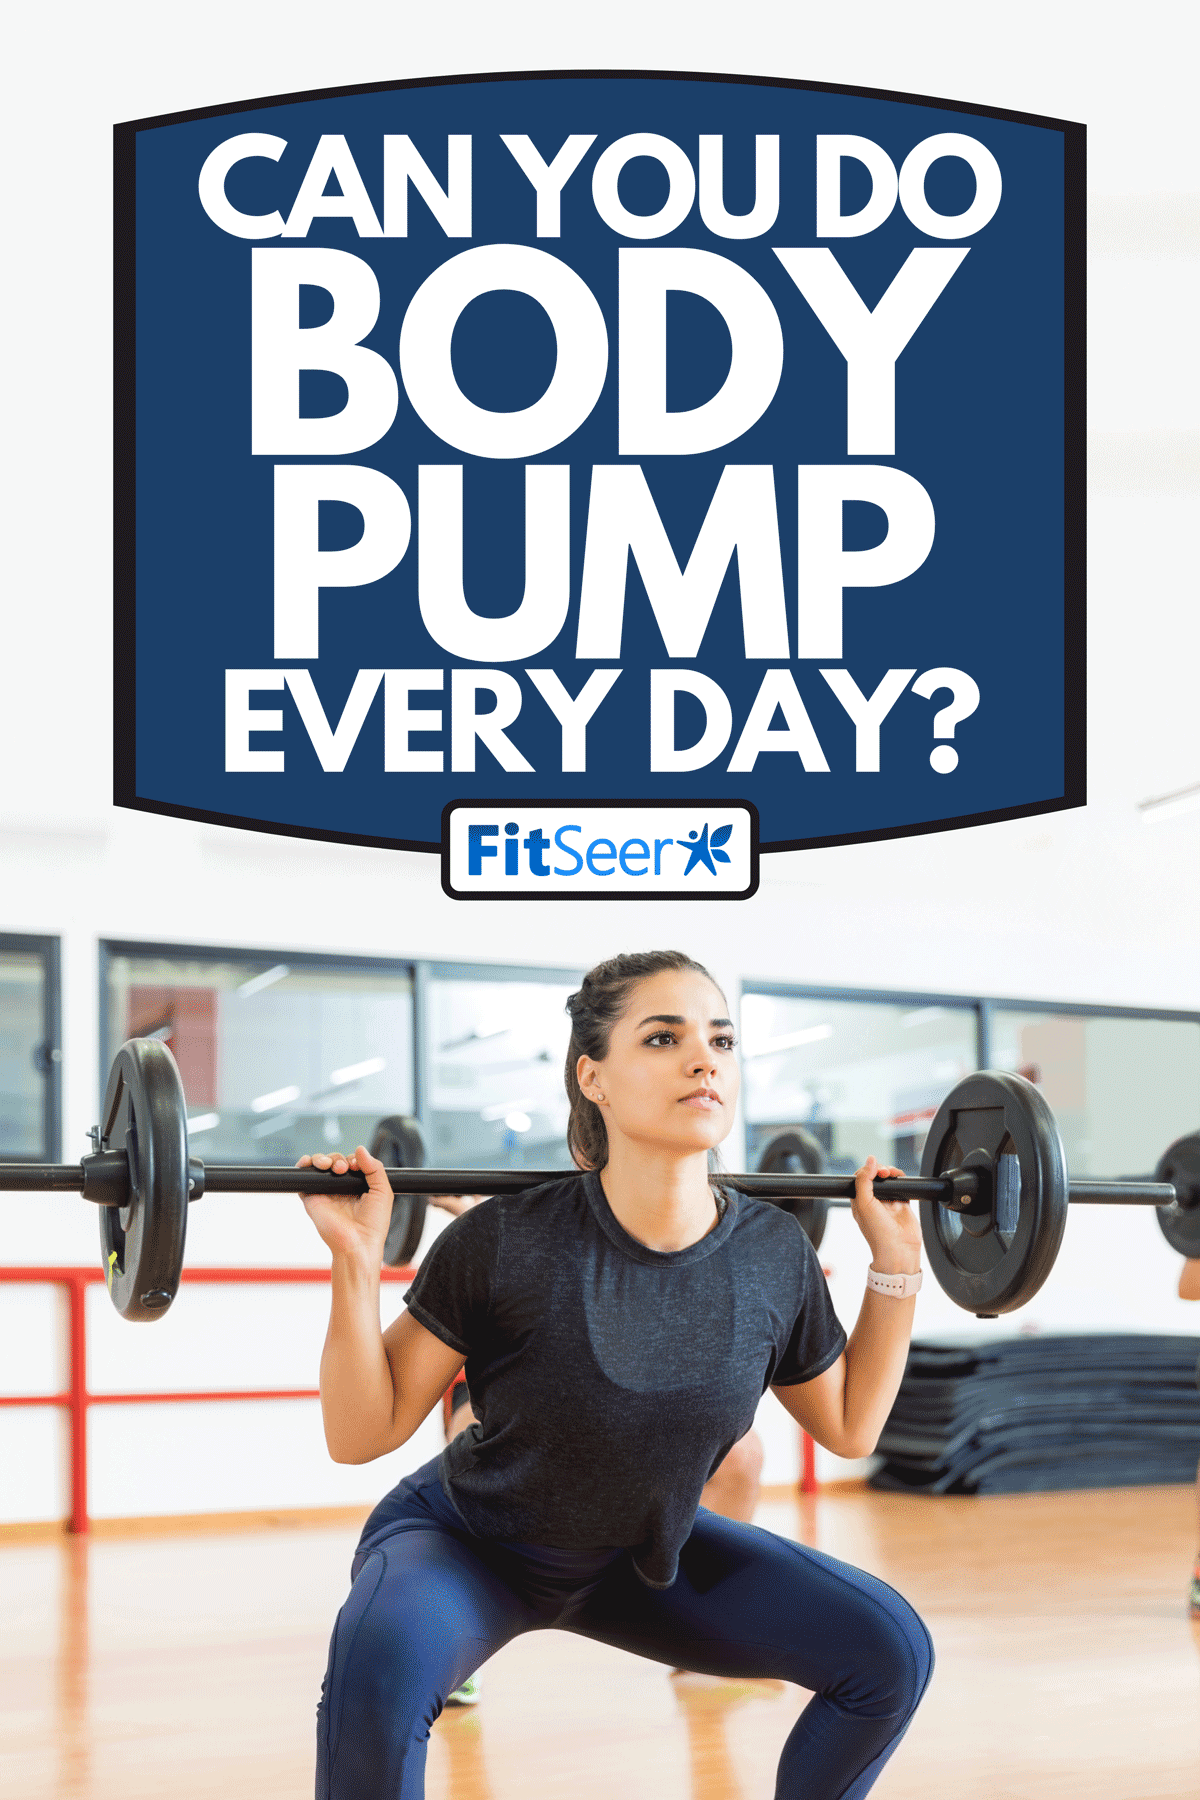 A dedicated female client exercising with barbell in health club, Can You Do Body Pump Every Day?